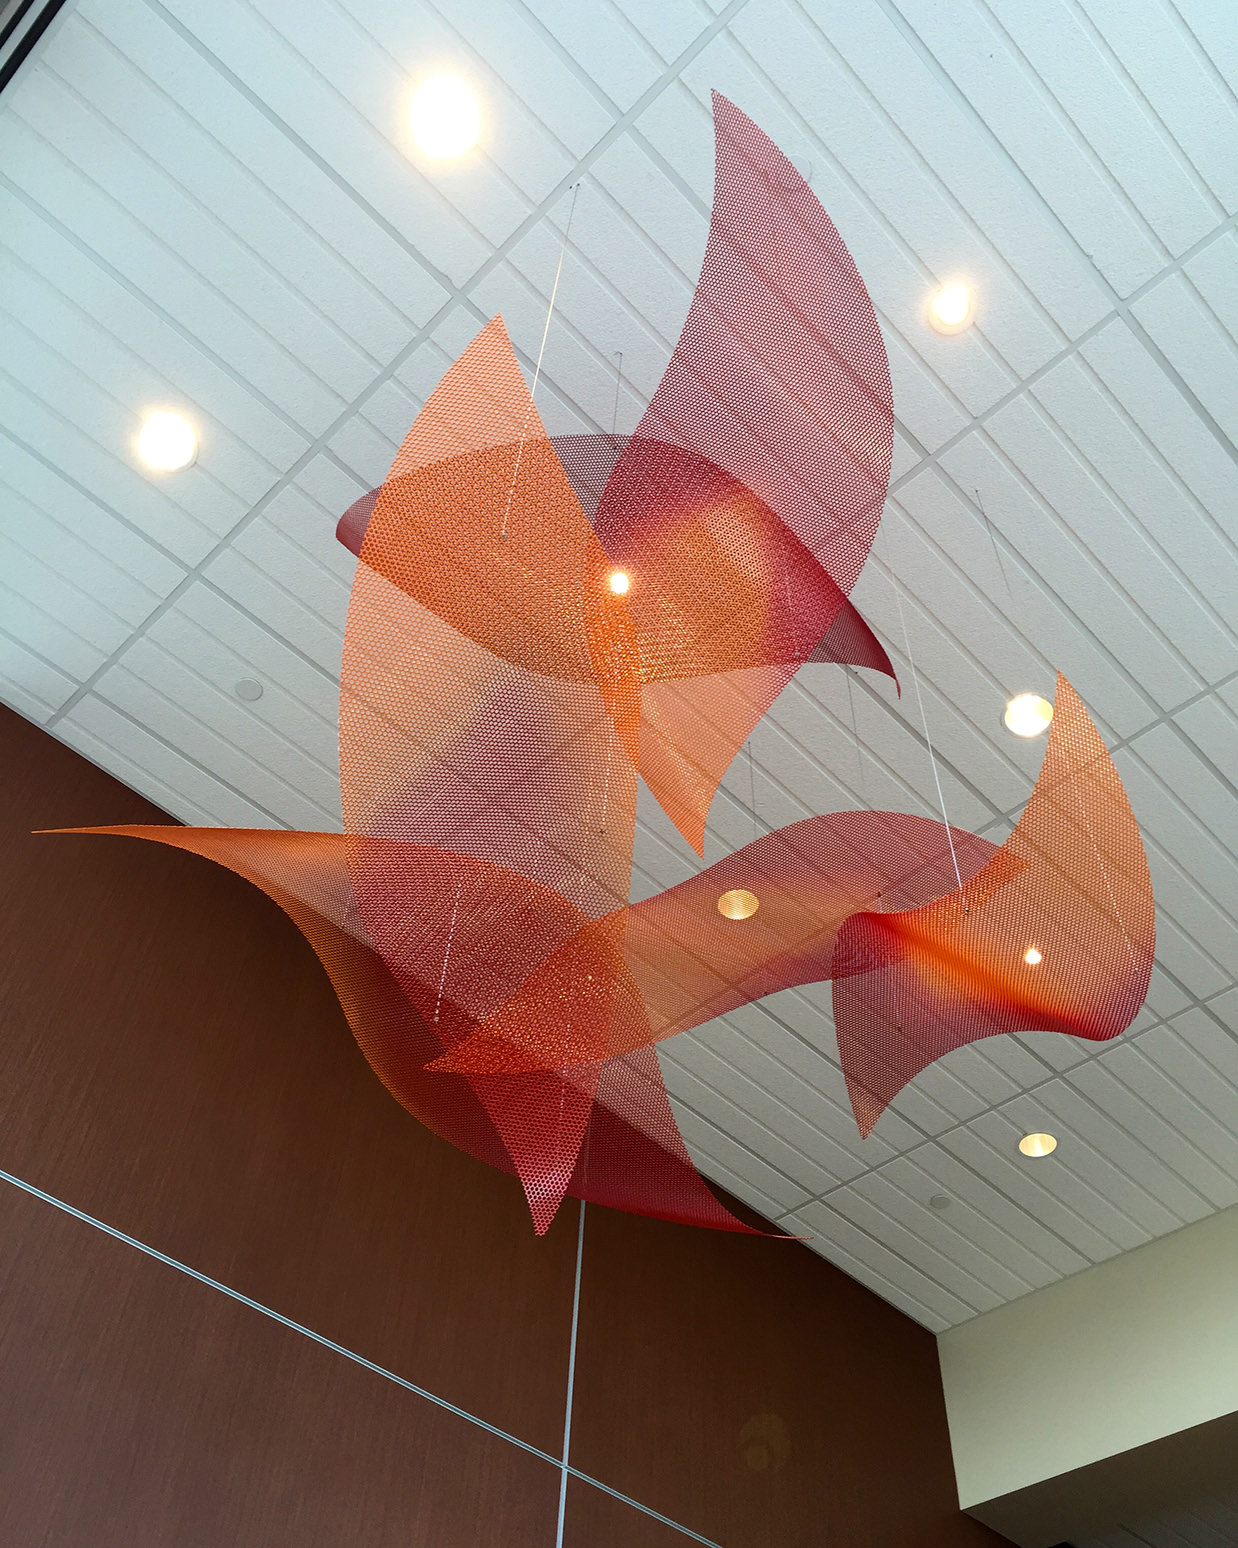 Autumn Uplift small suspended sculpture by Talley Fisher in Maple Grove Clinic and Specialty Center.